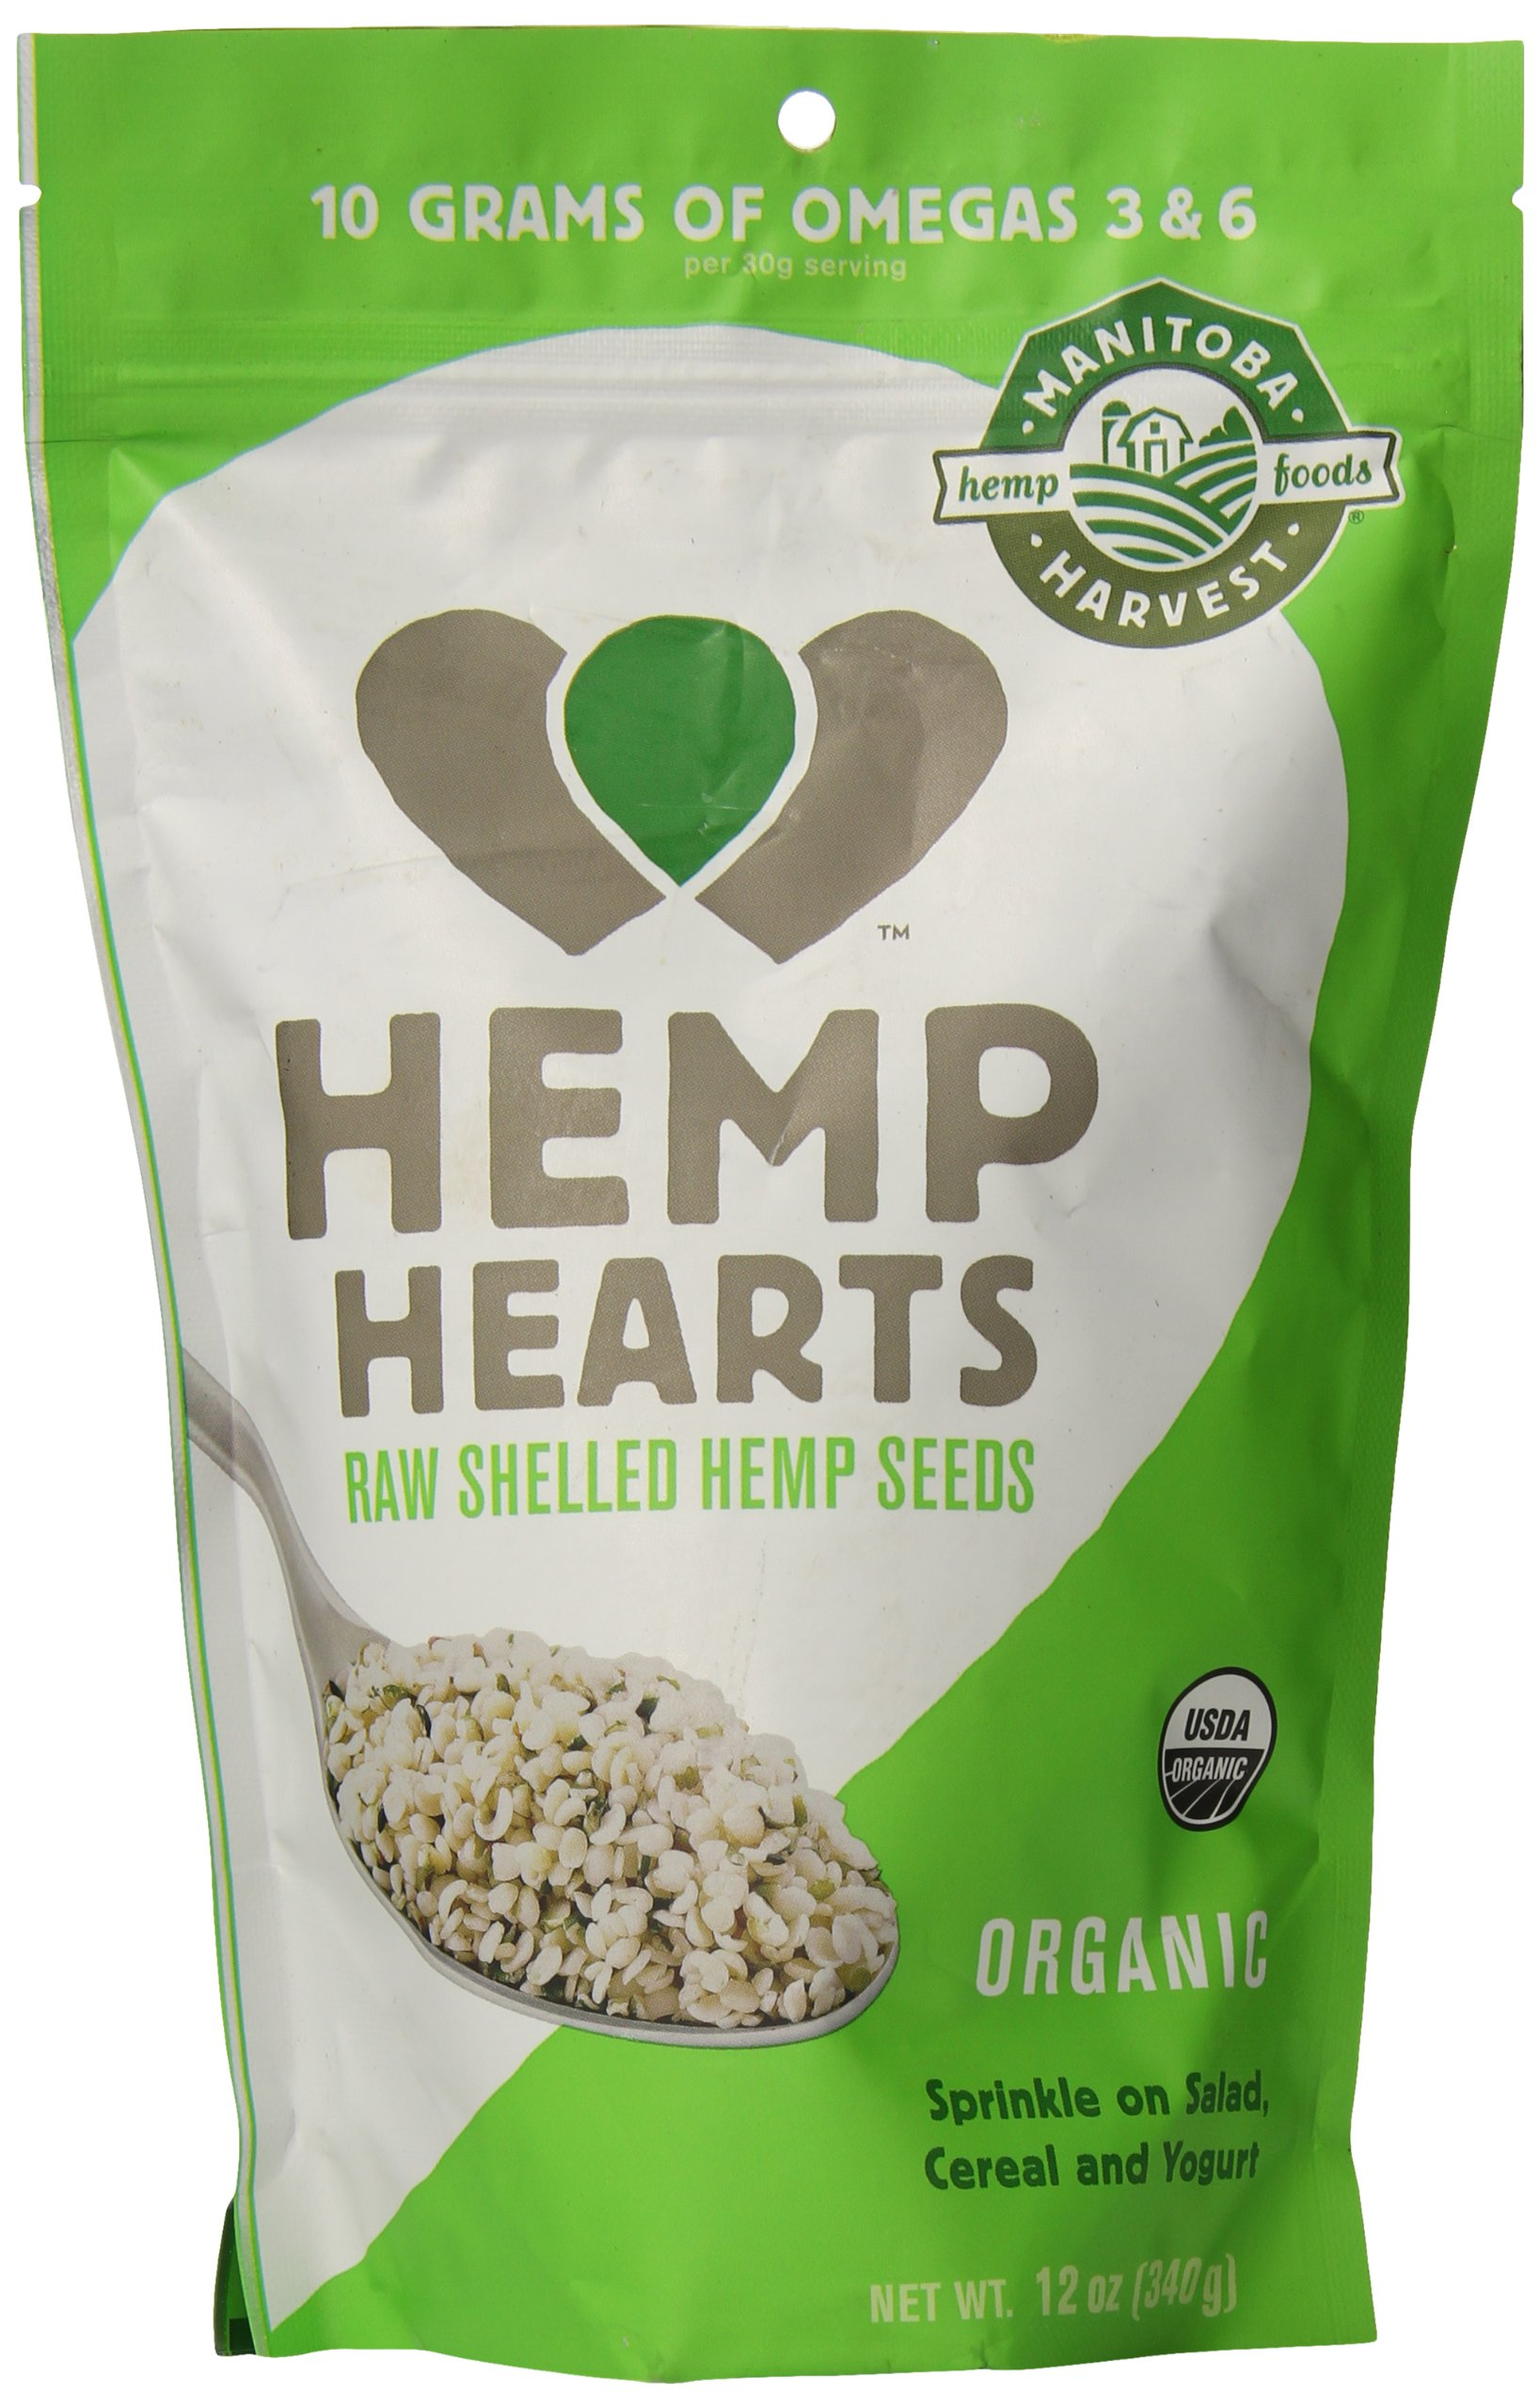 Manitoba Harvest Organic Hemp Hearts Raw Shelled Hemp Seeds, 12oz; with 10g of Protein & Omegas per Serving